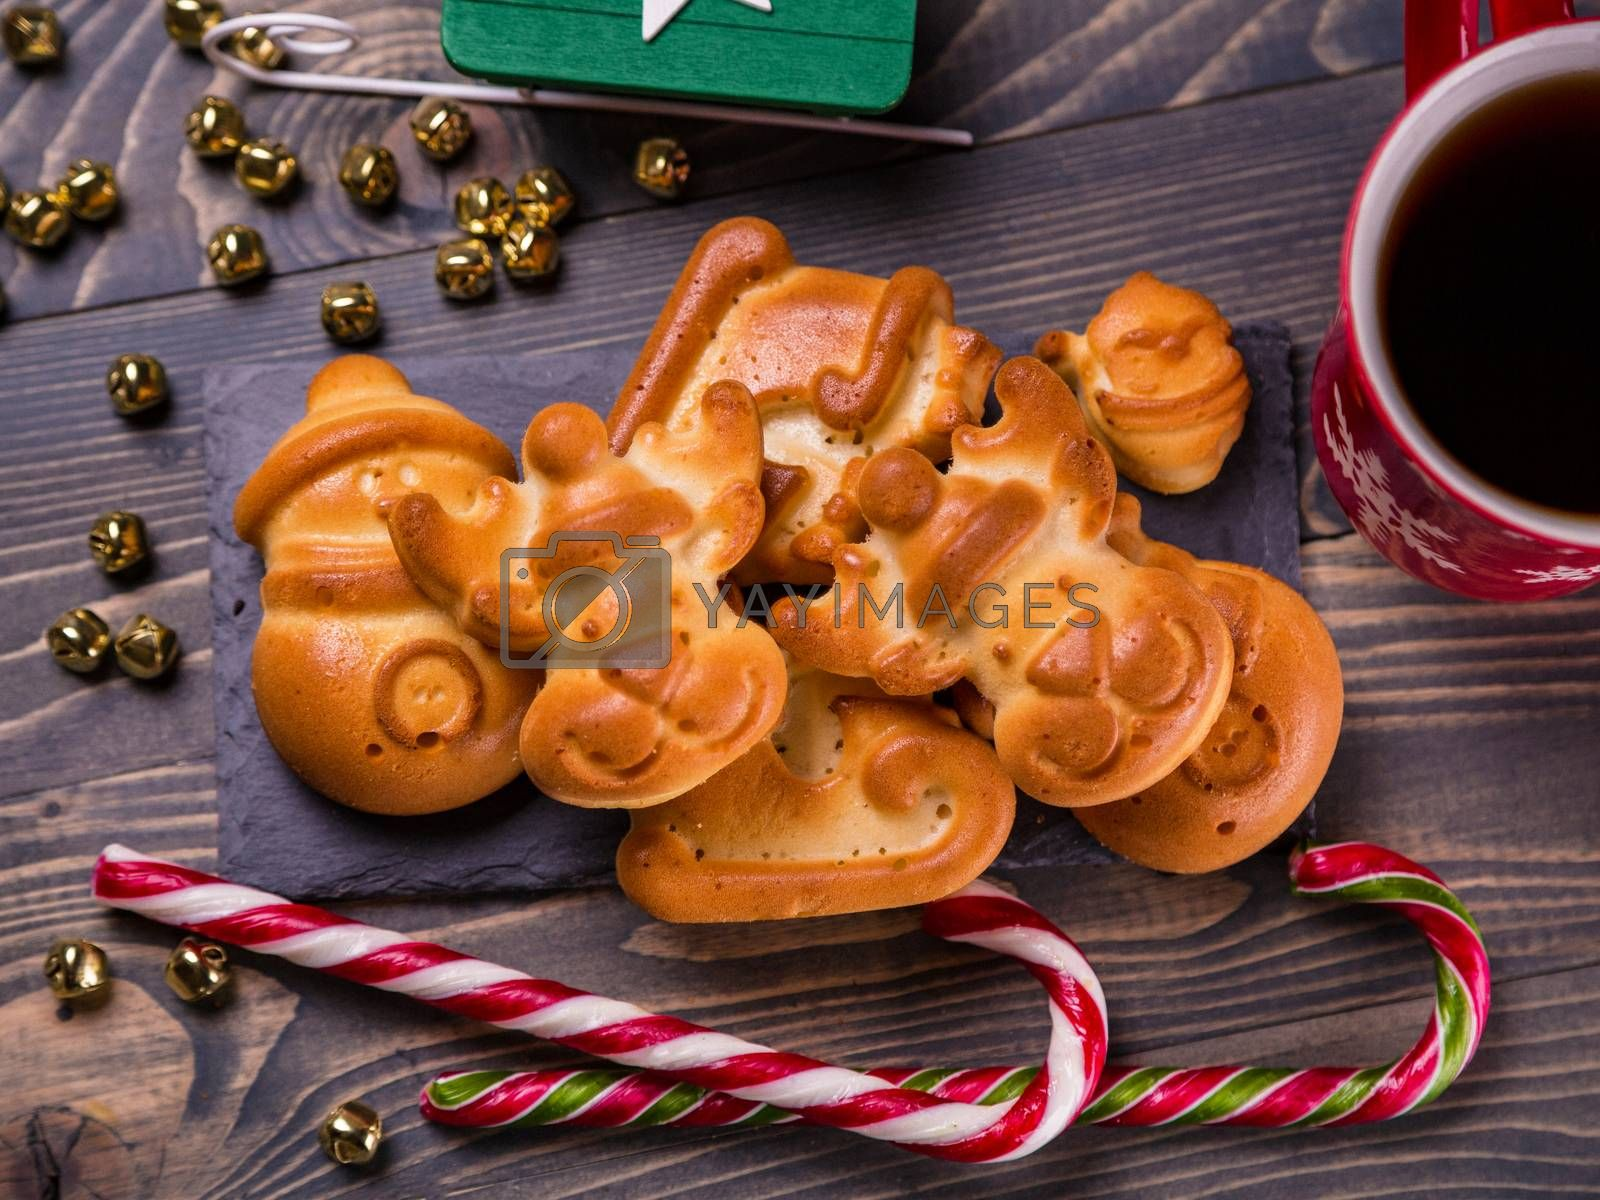 Background with tasty cookies, cup of coffee and Christmas decor on wooden table. Greeting card with gingerbread cookies. Close up, top view. Merry Christmas and Happy New Year. Homemade cookies.